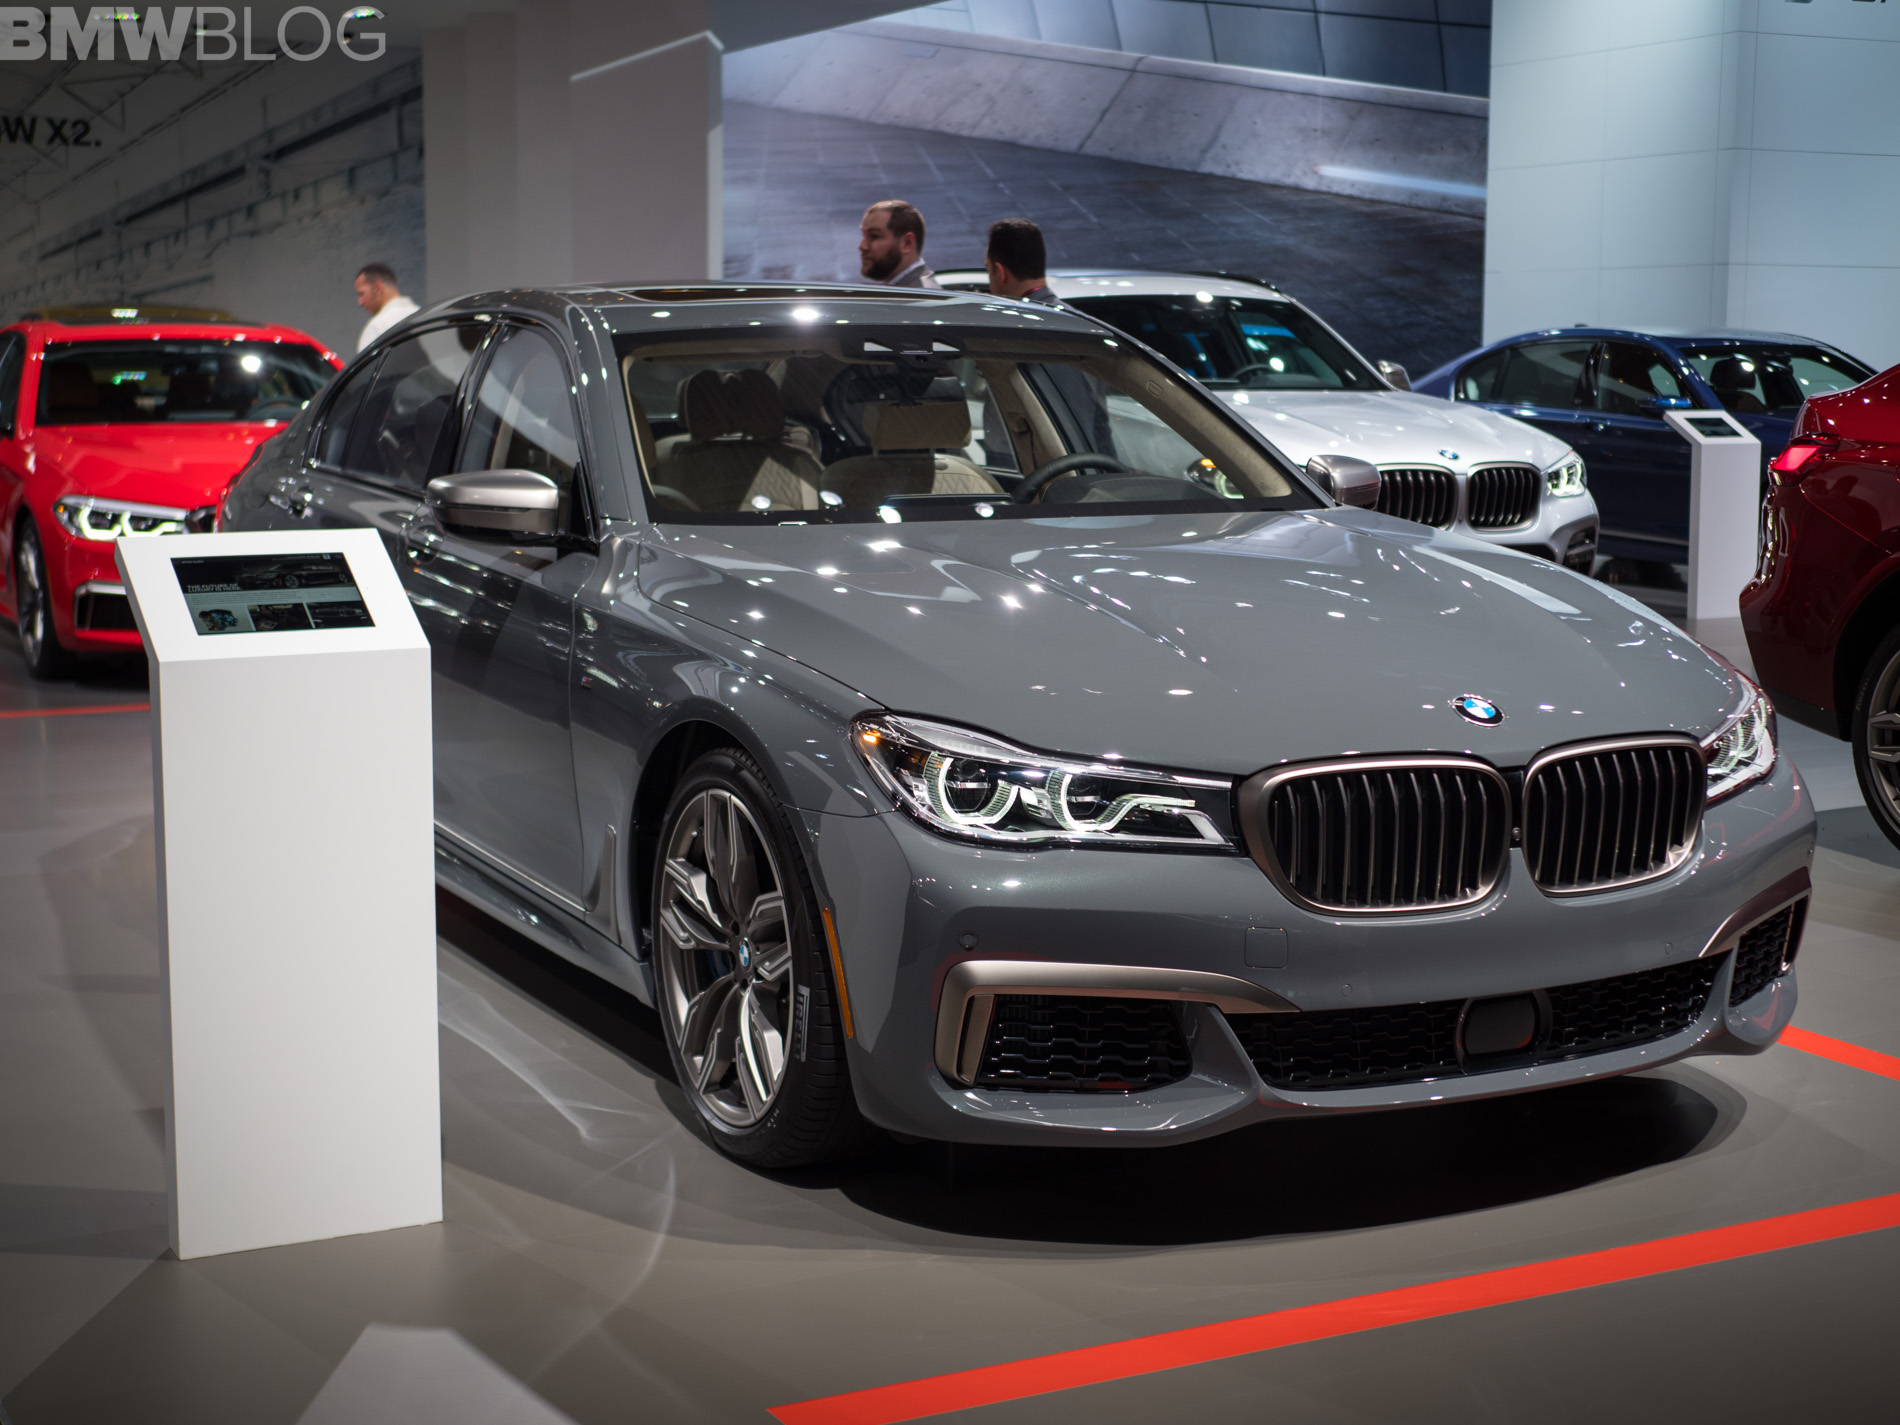 2018 NYIAS: Grigio Telesto is featured on this BMW M760Li